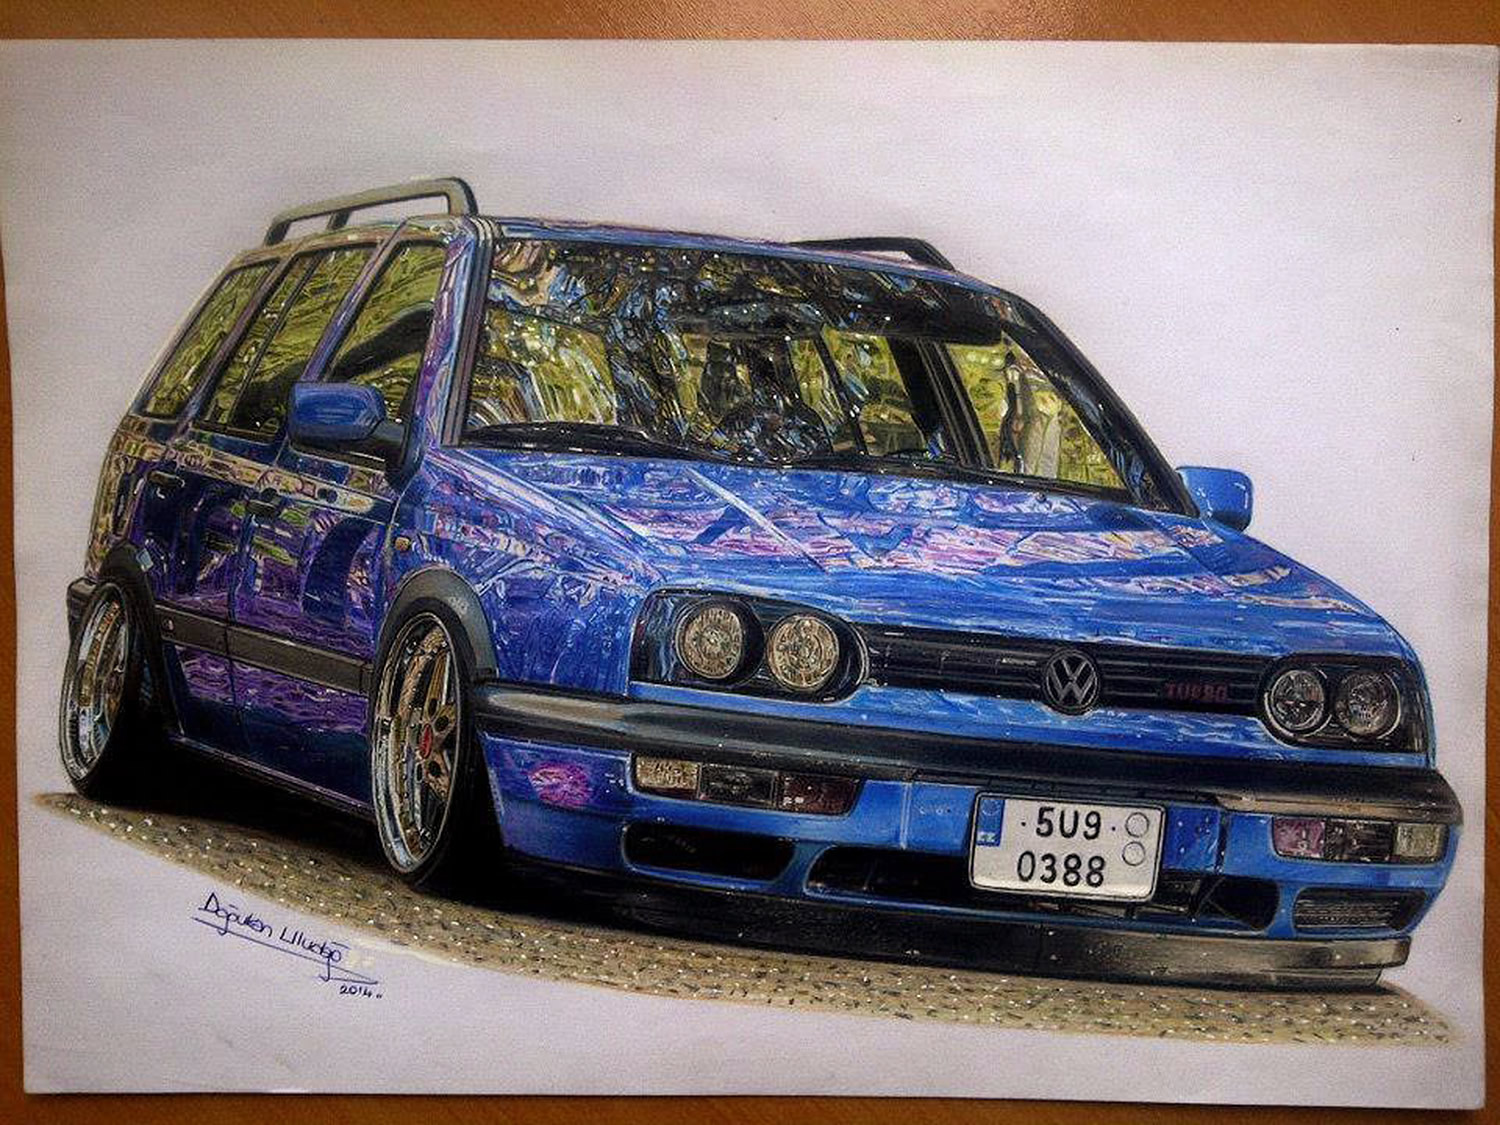 blue wv car, drawing by ulas and dogukan